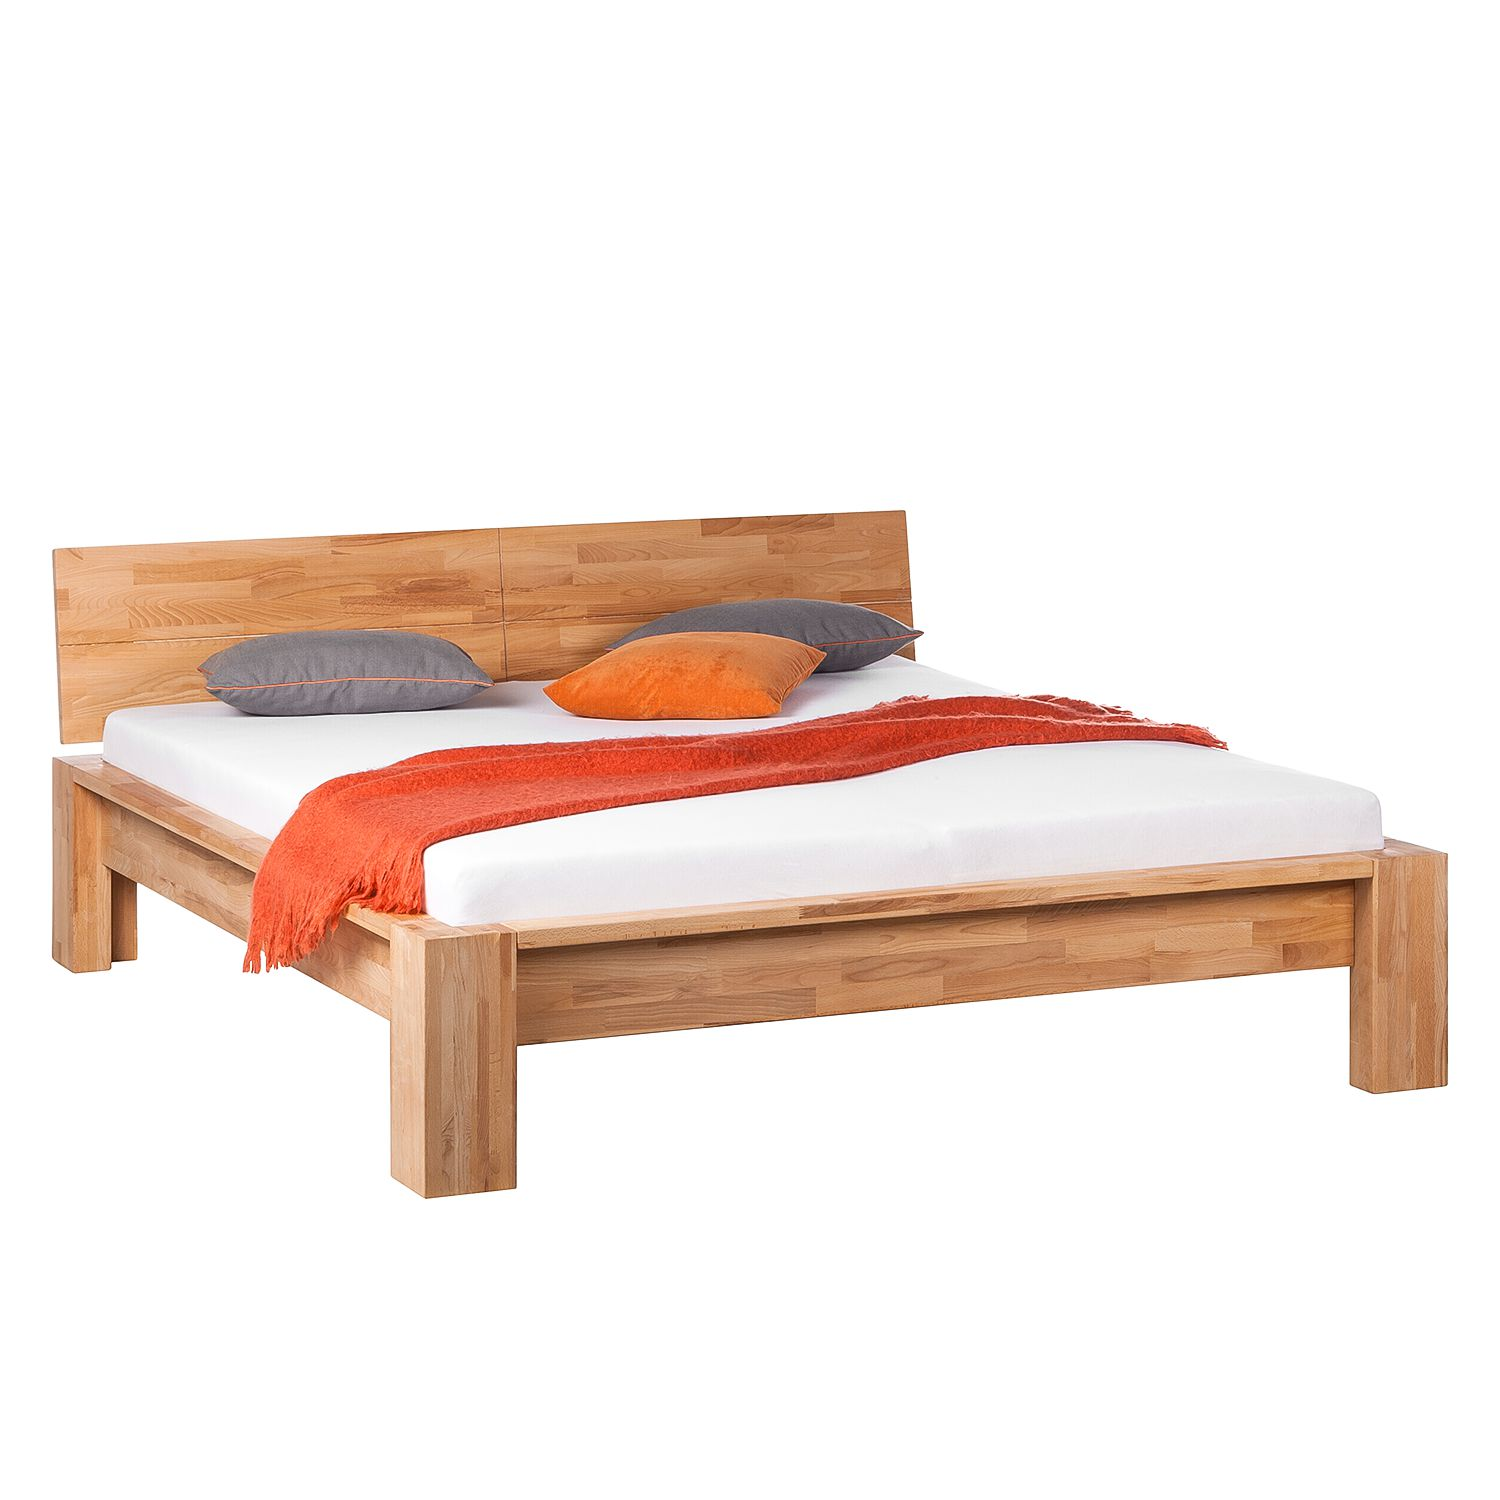 goedkoop Bed ParosWood massief hout 160 x 200cm Beuk Ars Natura